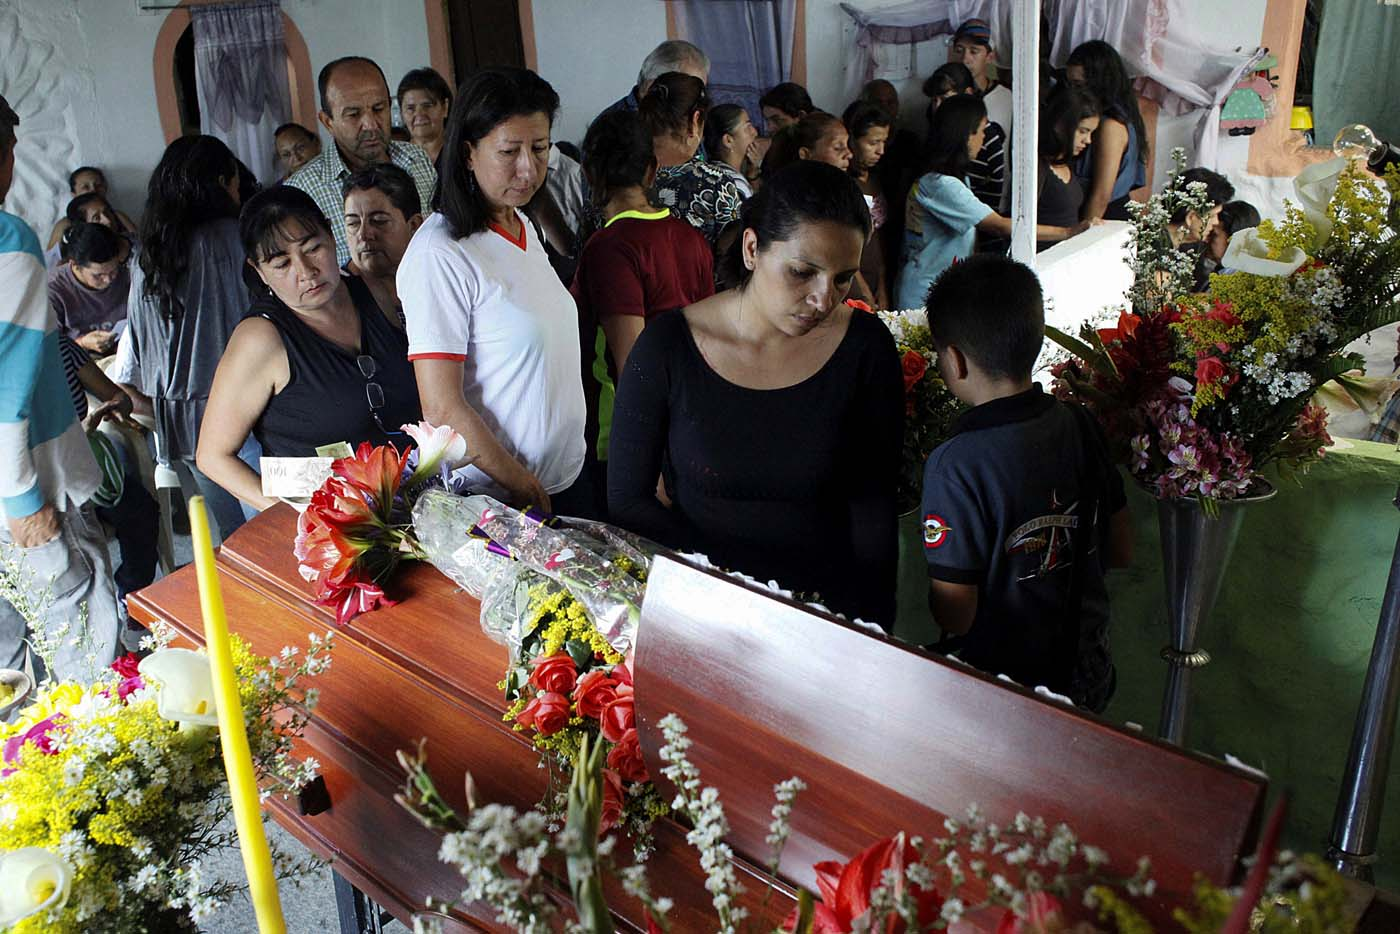 Mourners look at the coffin of Paola Ramirez, a student who died during a protest, in her wake in San Cristobal, Venezuela April 20, 2017. REUTERS/Carlos Eduardo Ramirez